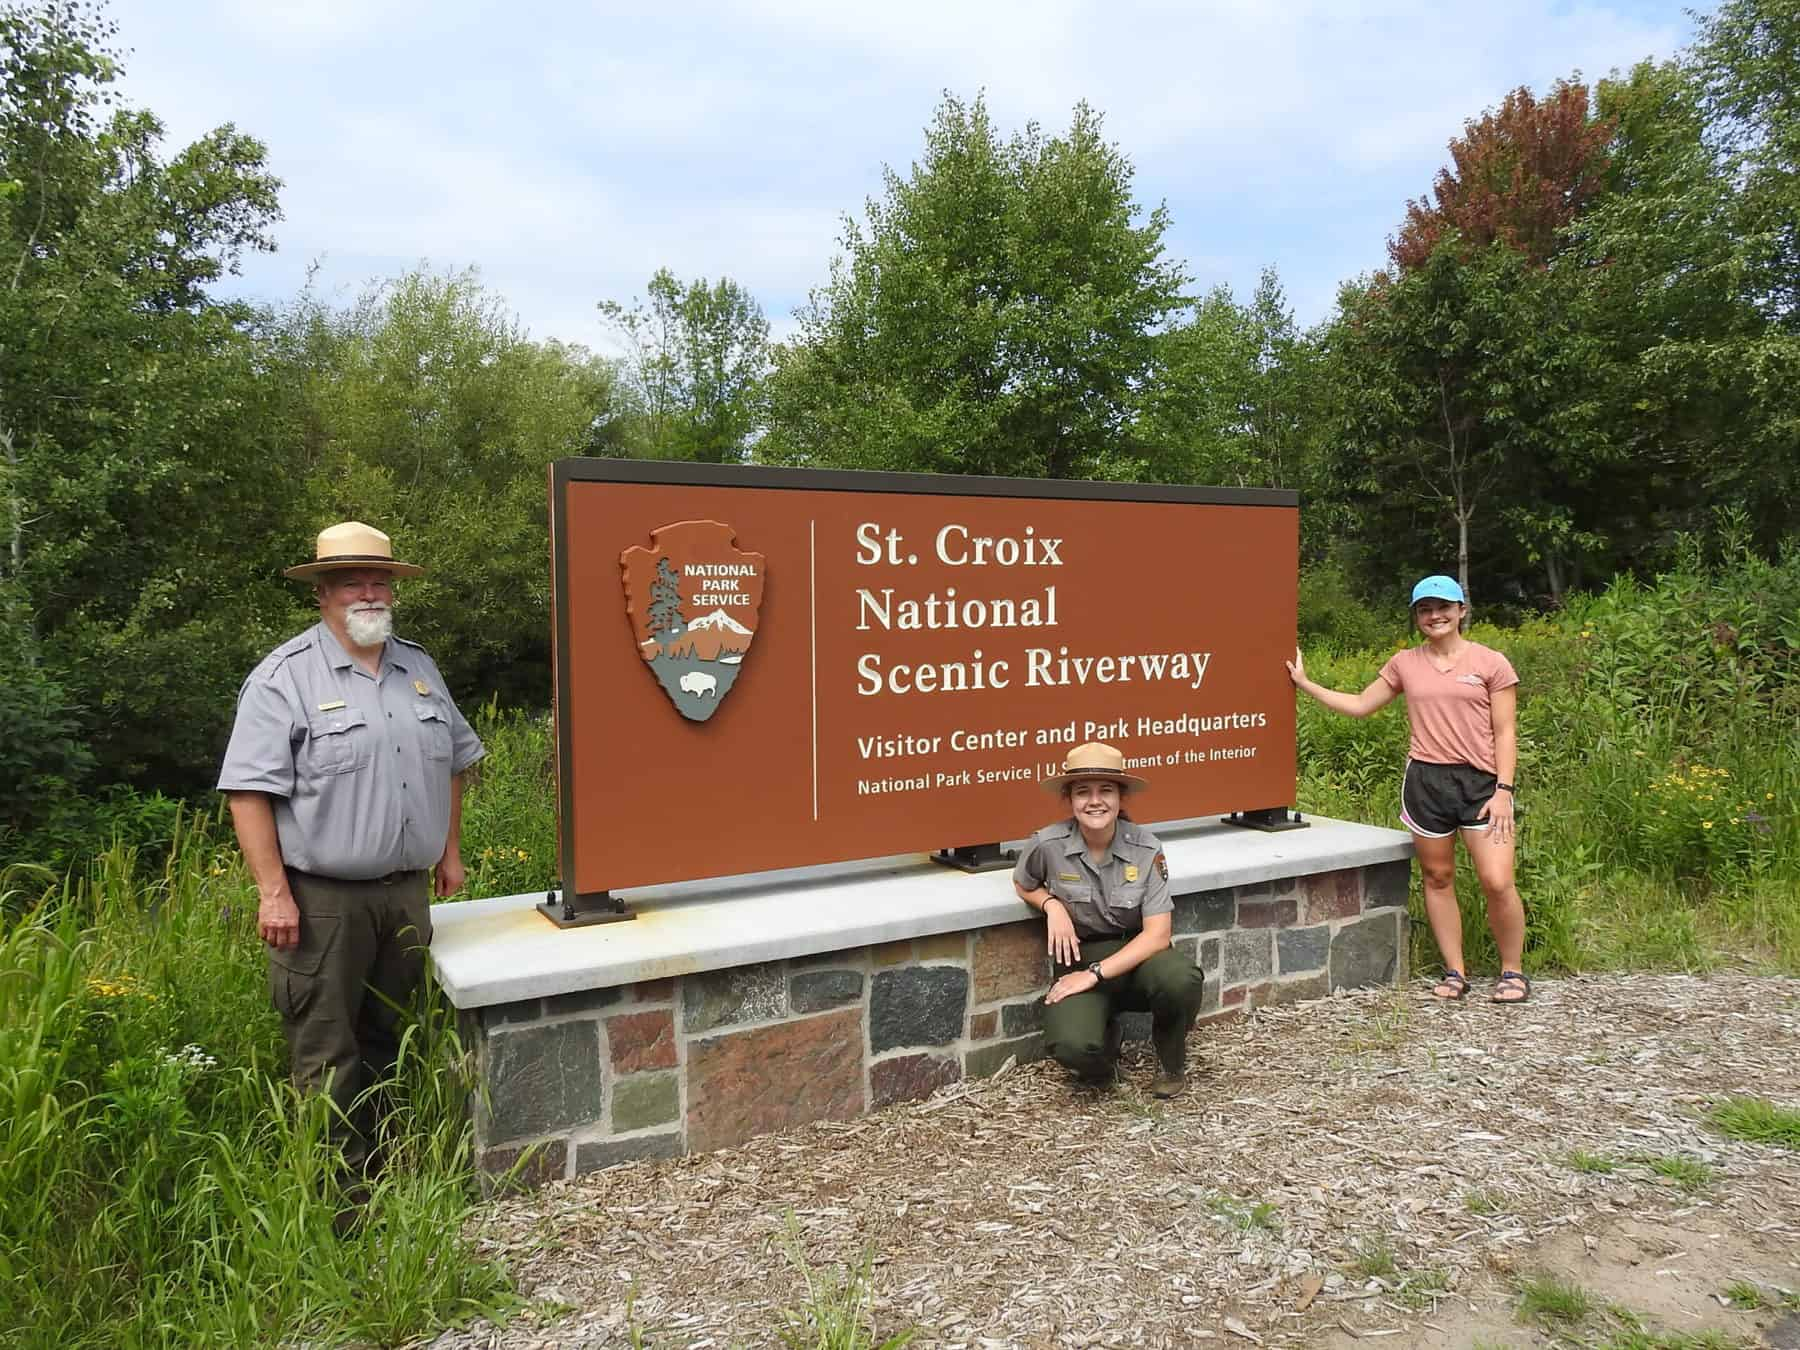 St. Croix National Scenic Riverway Park Rangers and Wild Rivers Conservancy staff. (Photo: Sophia Patane, Wild Rivers Conservancy)